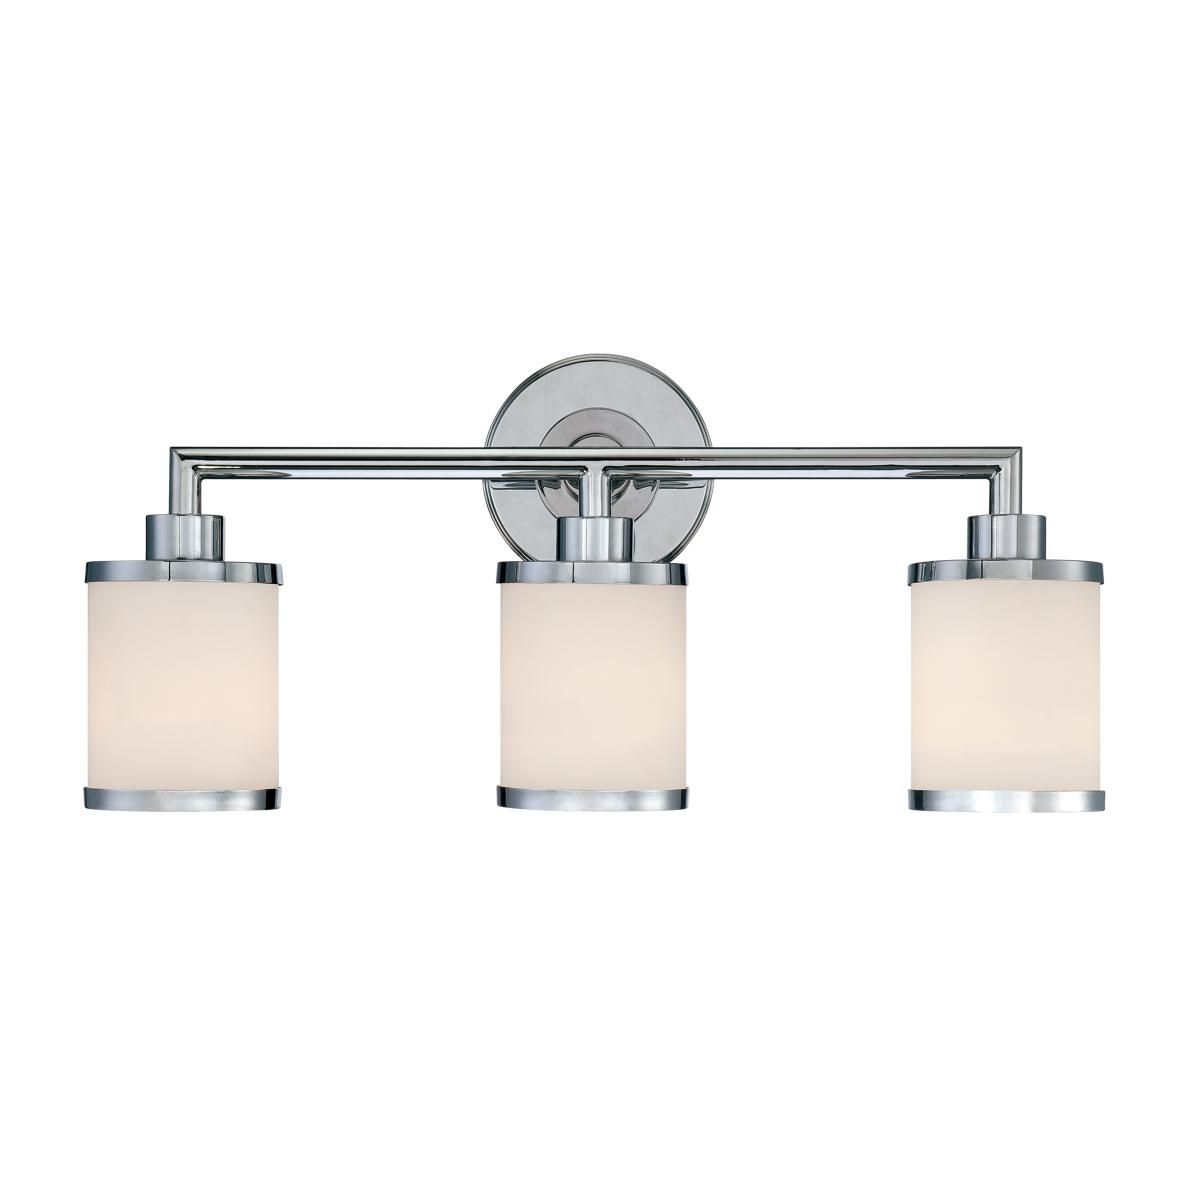 Contemporary urban bath vanity light 3 light master bed and bath